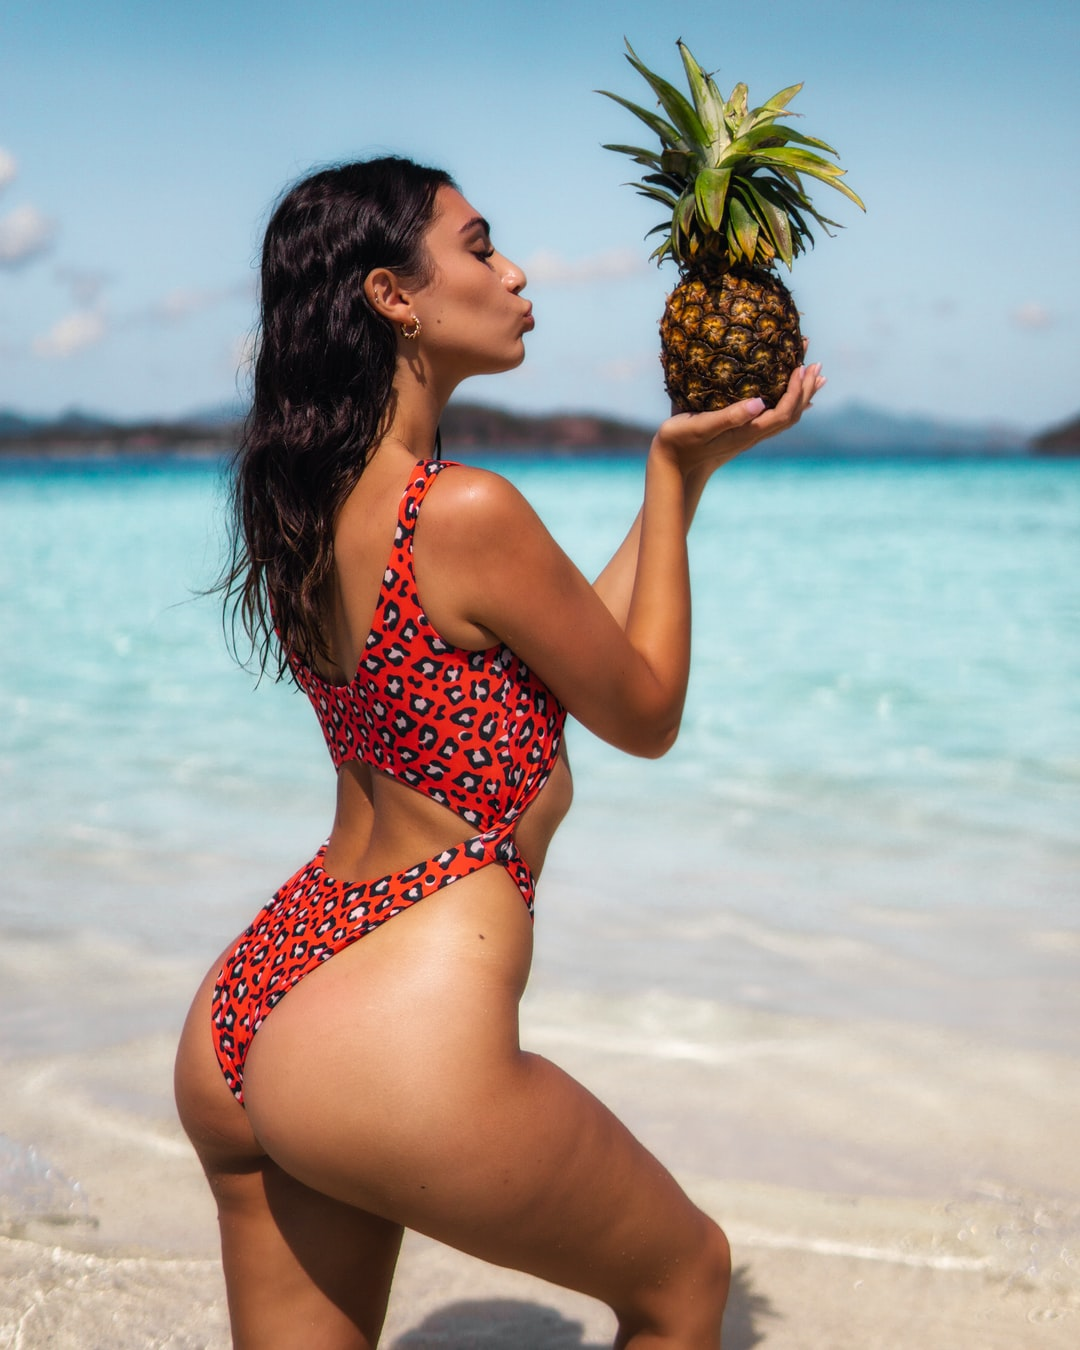 Beautiful girl in The Wild Swim swimsuit bikini kissing a pineapple on the tropical island on a beach in the Philippines